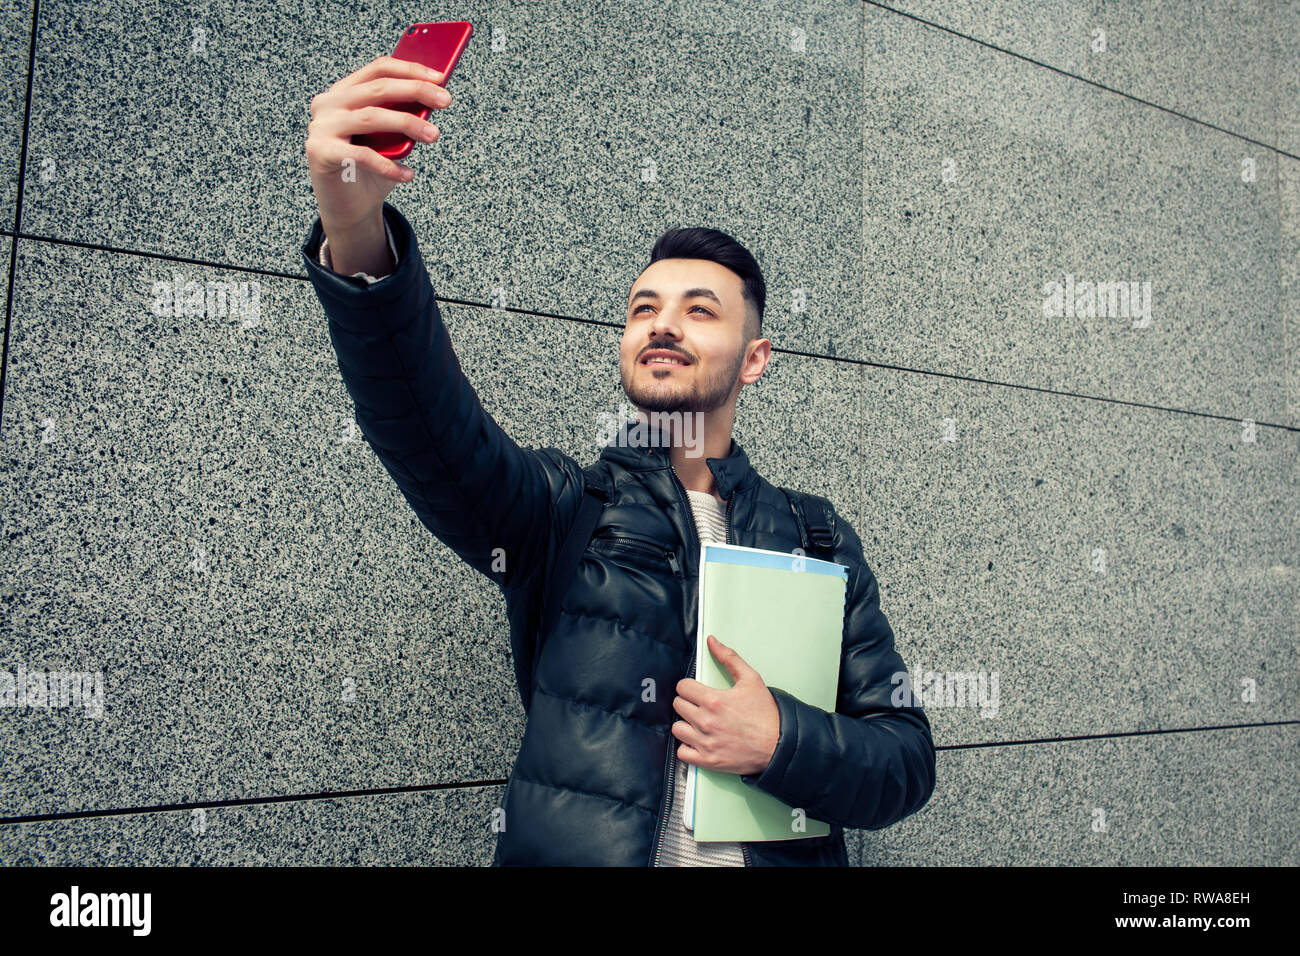 Arabian student takes selfie on smartphone outside. Happy guy looks at phone by the wall after classes. Man holds copybooks - Stock Image